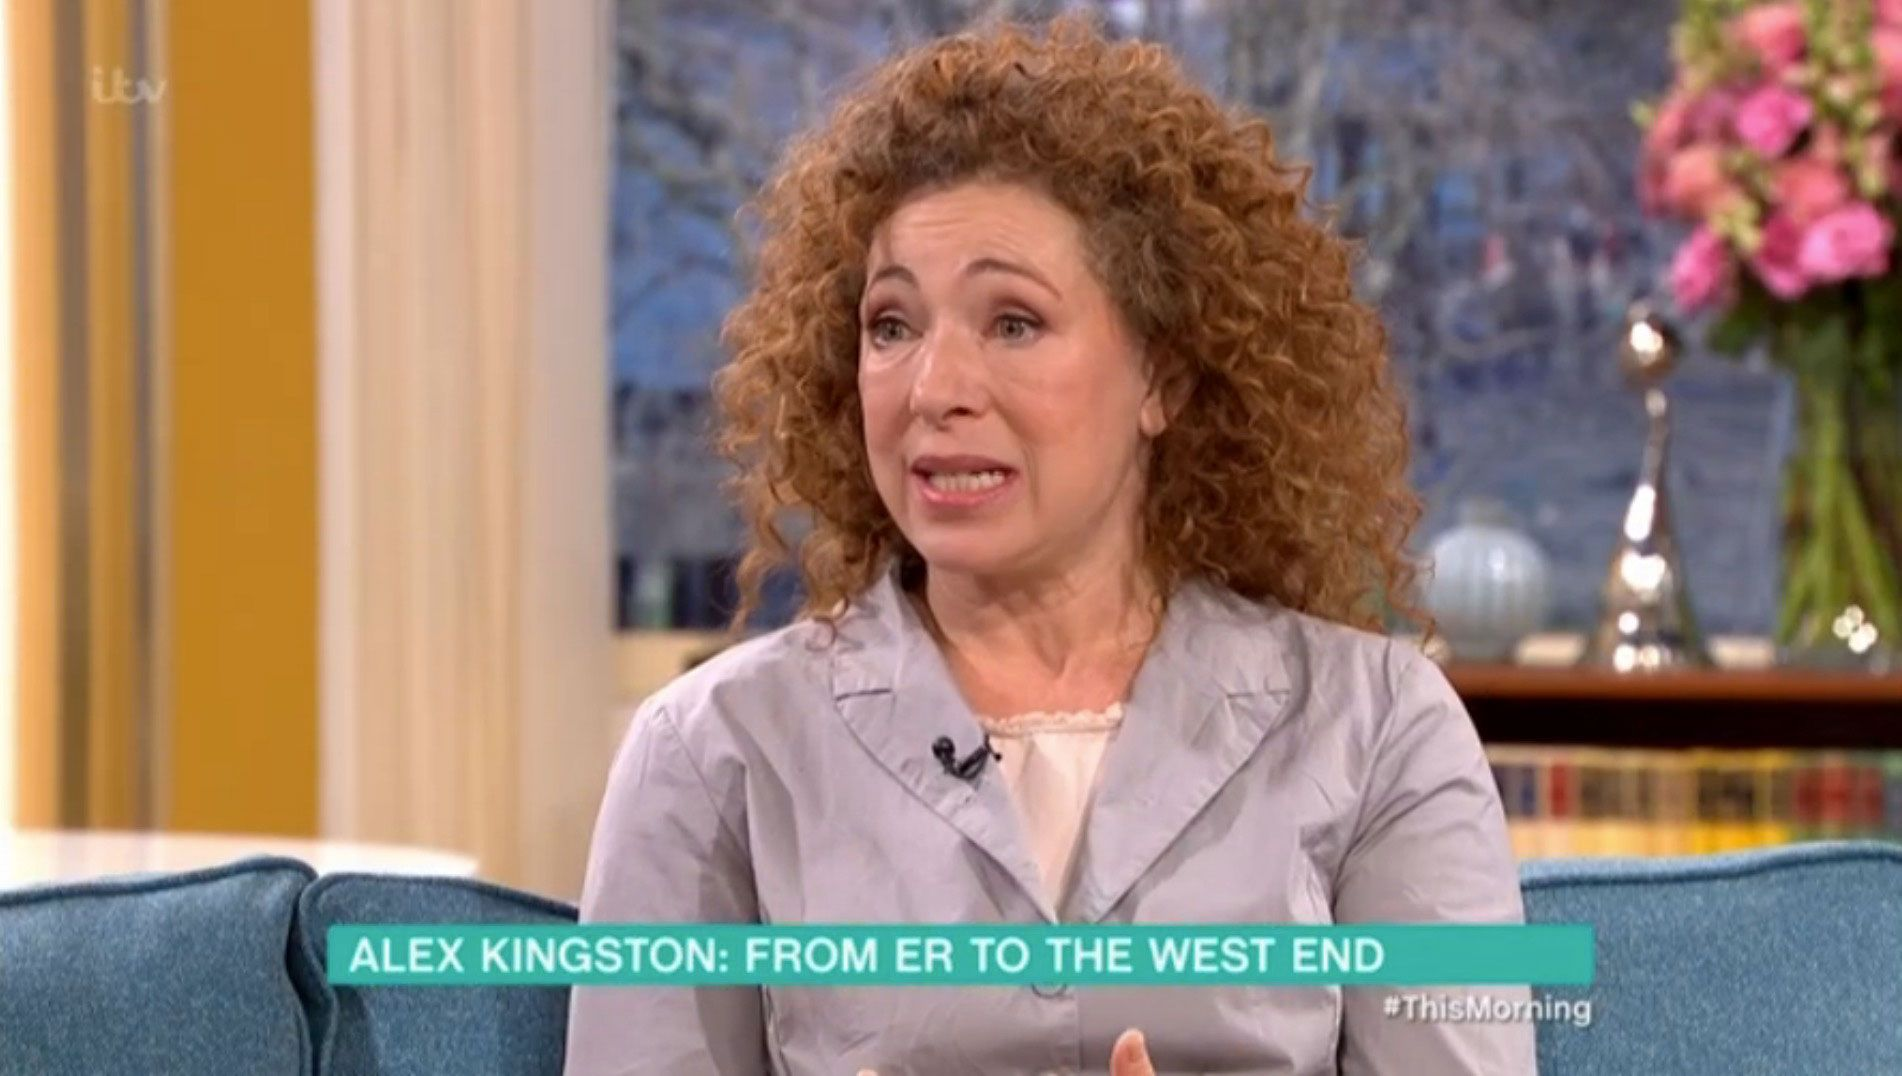 Alex Kingston ancestry